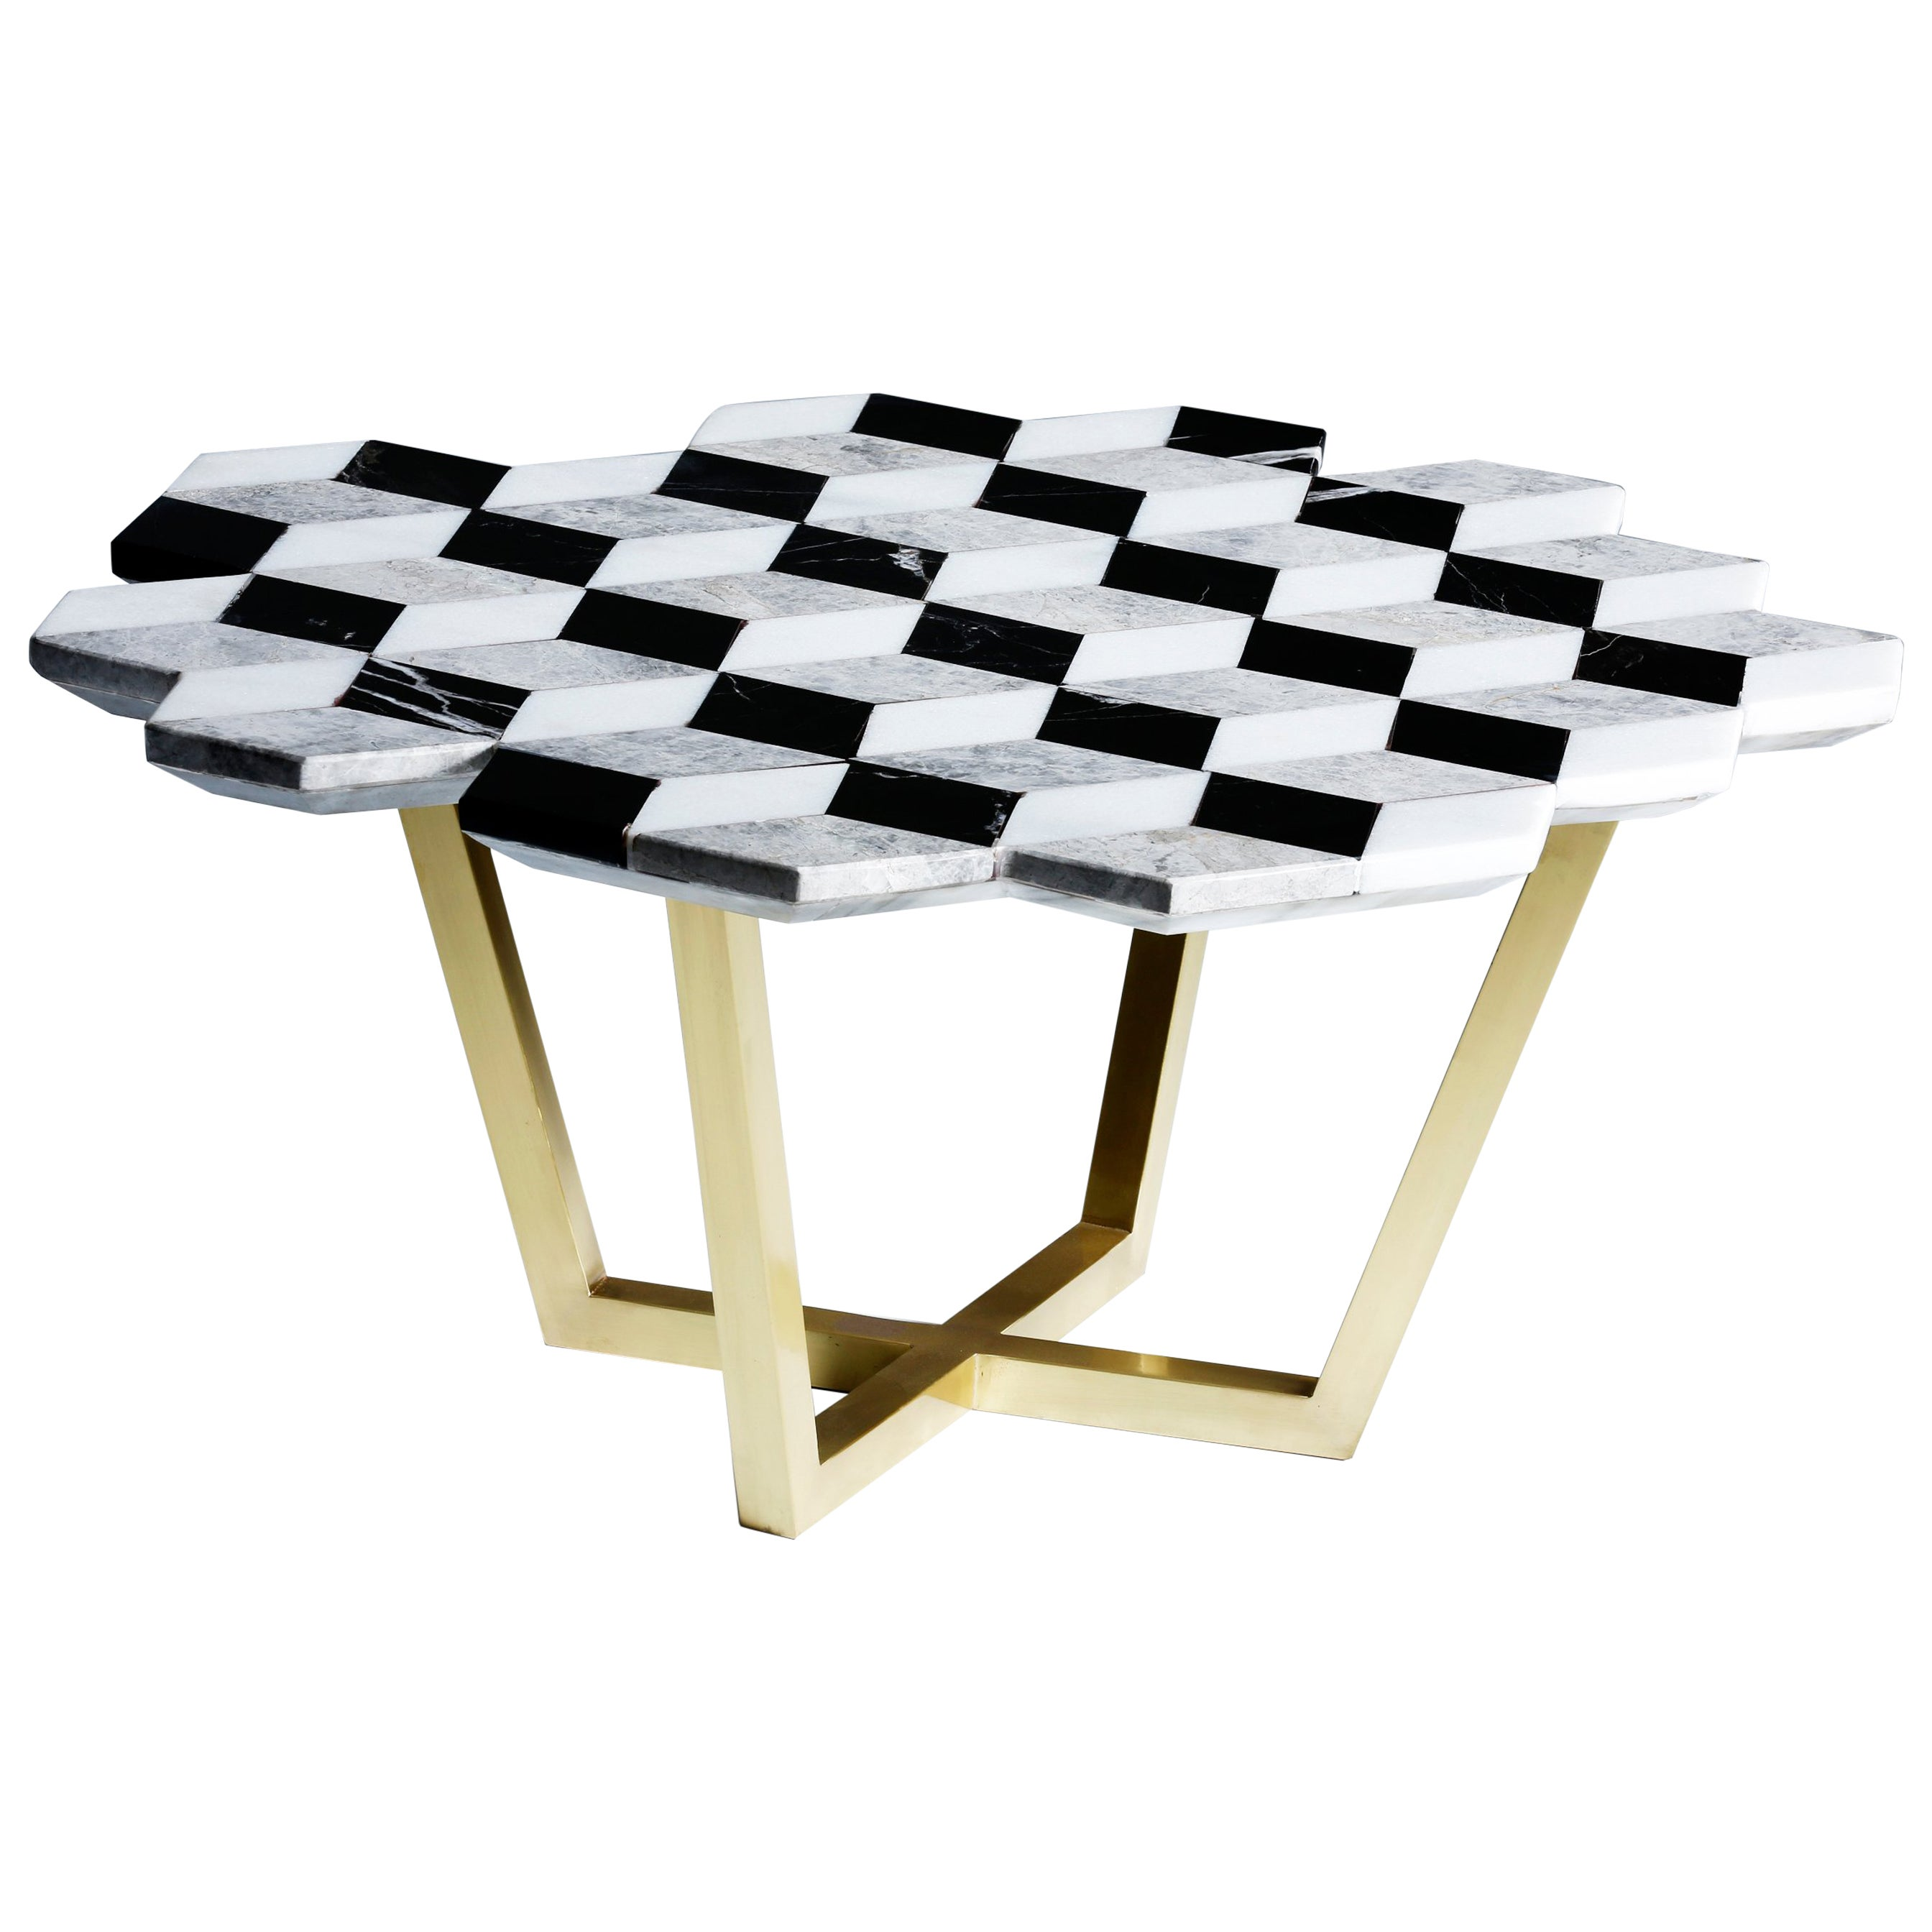 21st Century Diplopia Monochrome Cubic Marble Side Table